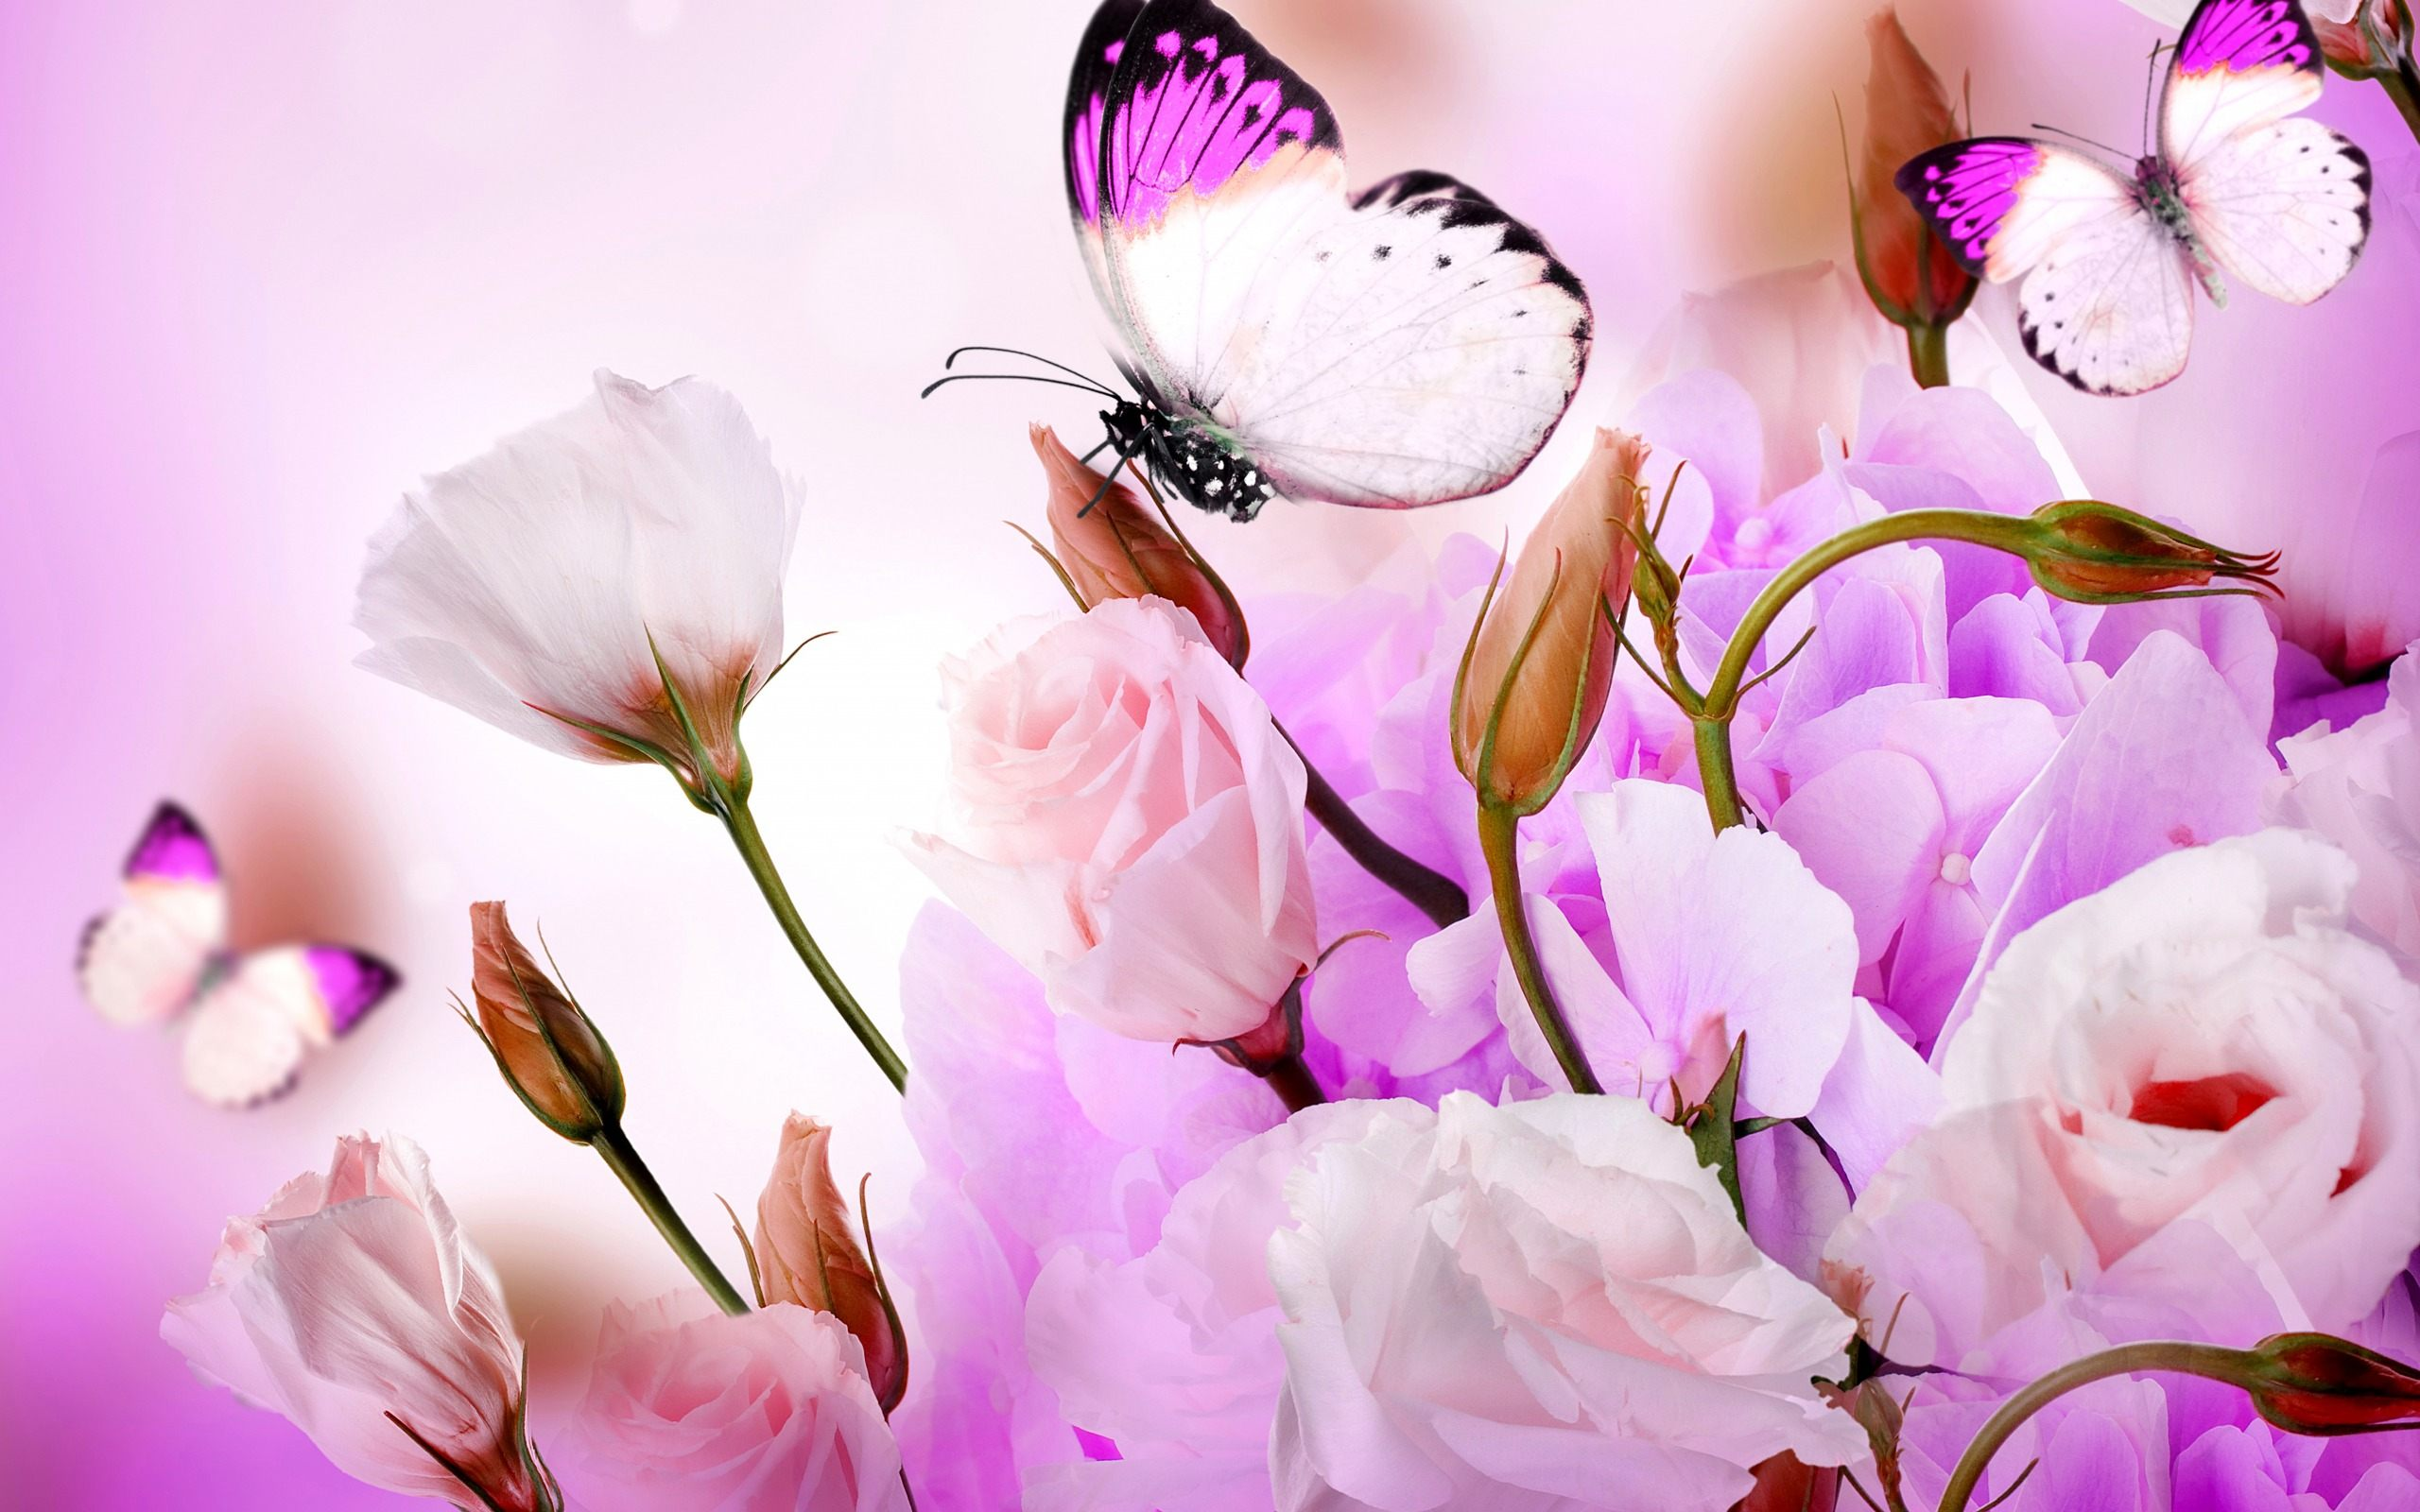 Butterfly Wallpaper - Full Hd Flowers And Butterfly , HD Wallpaper & Backgrounds